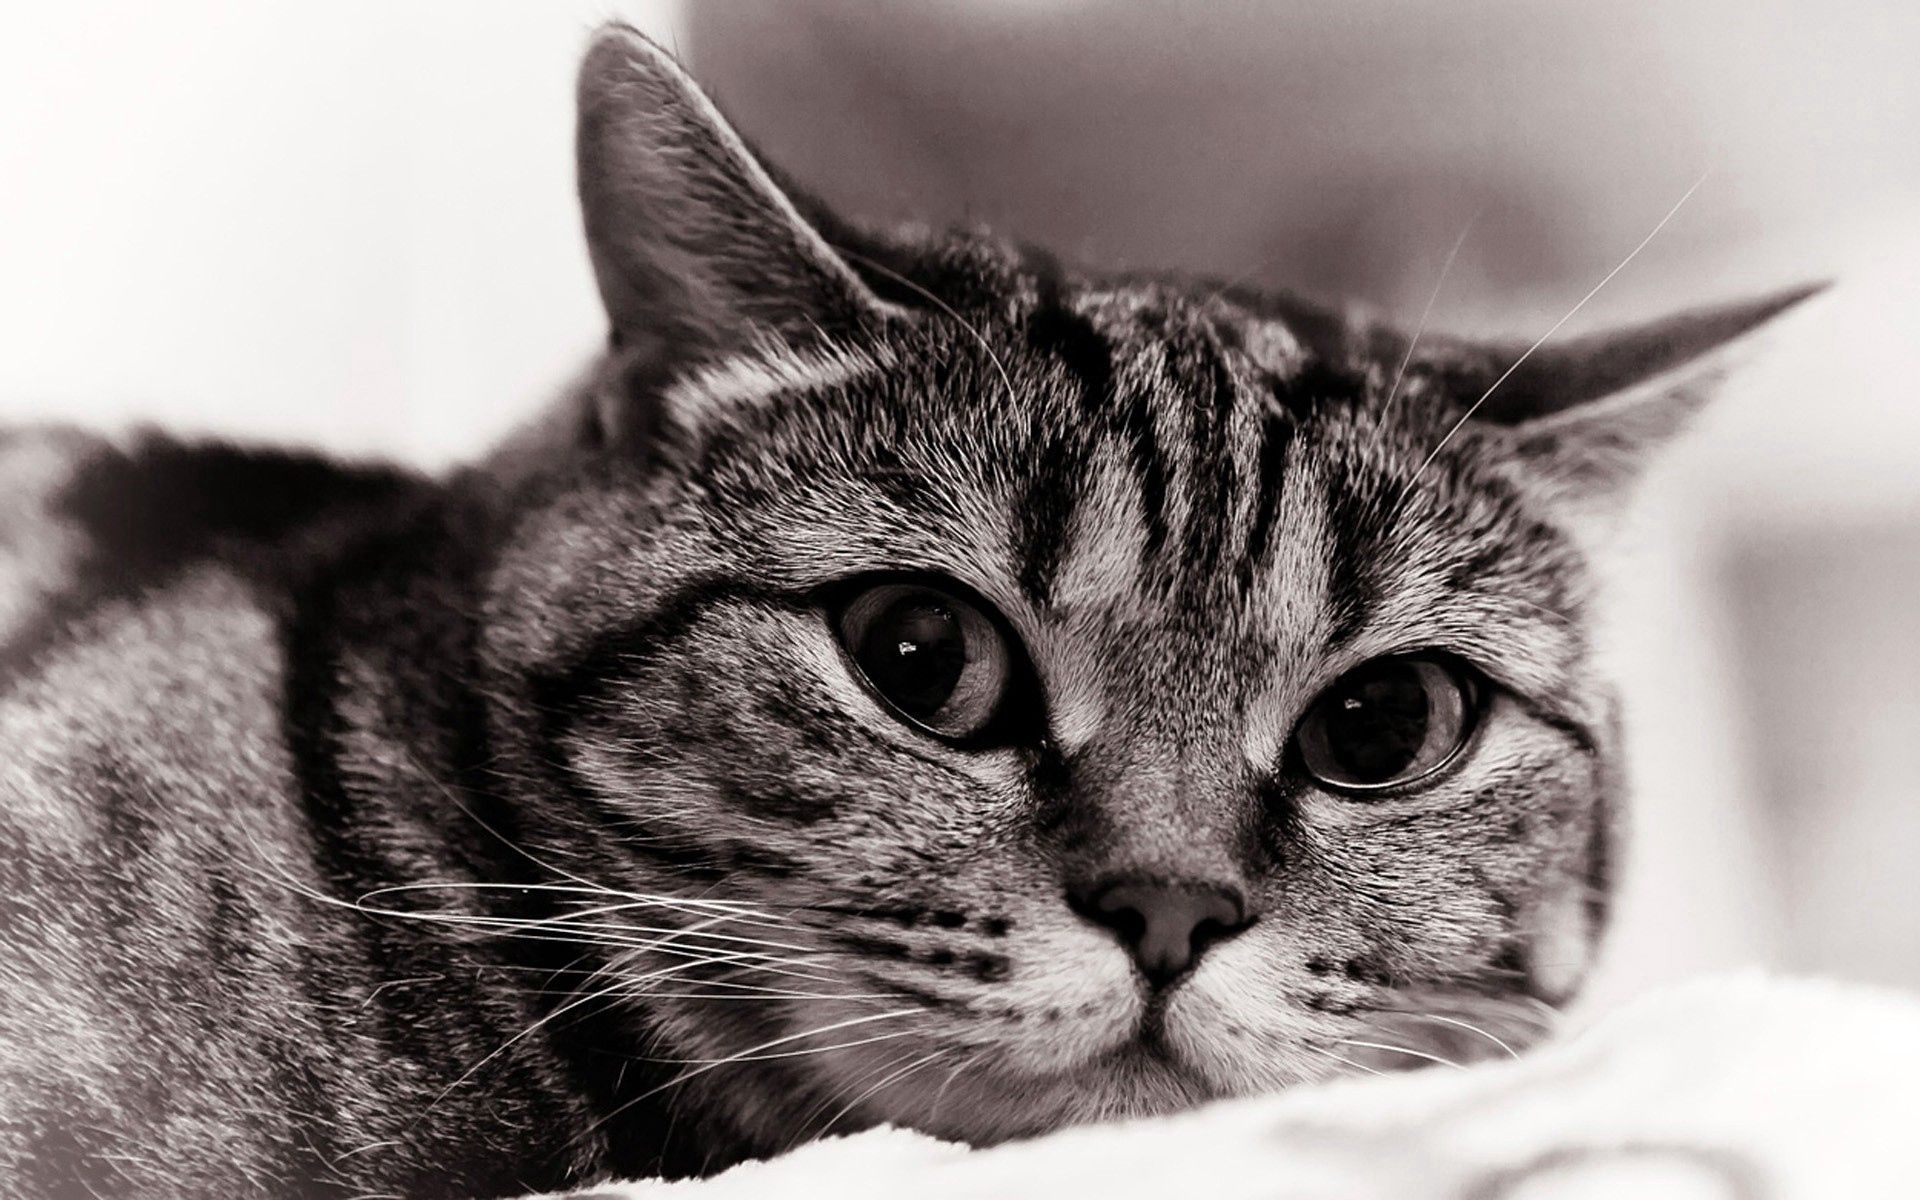 67274 download wallpaper Animals, Cat, Muzzle, Sight, Opinion, Bw, Chb, Sadness, Sorrow screensavers and pictures for free